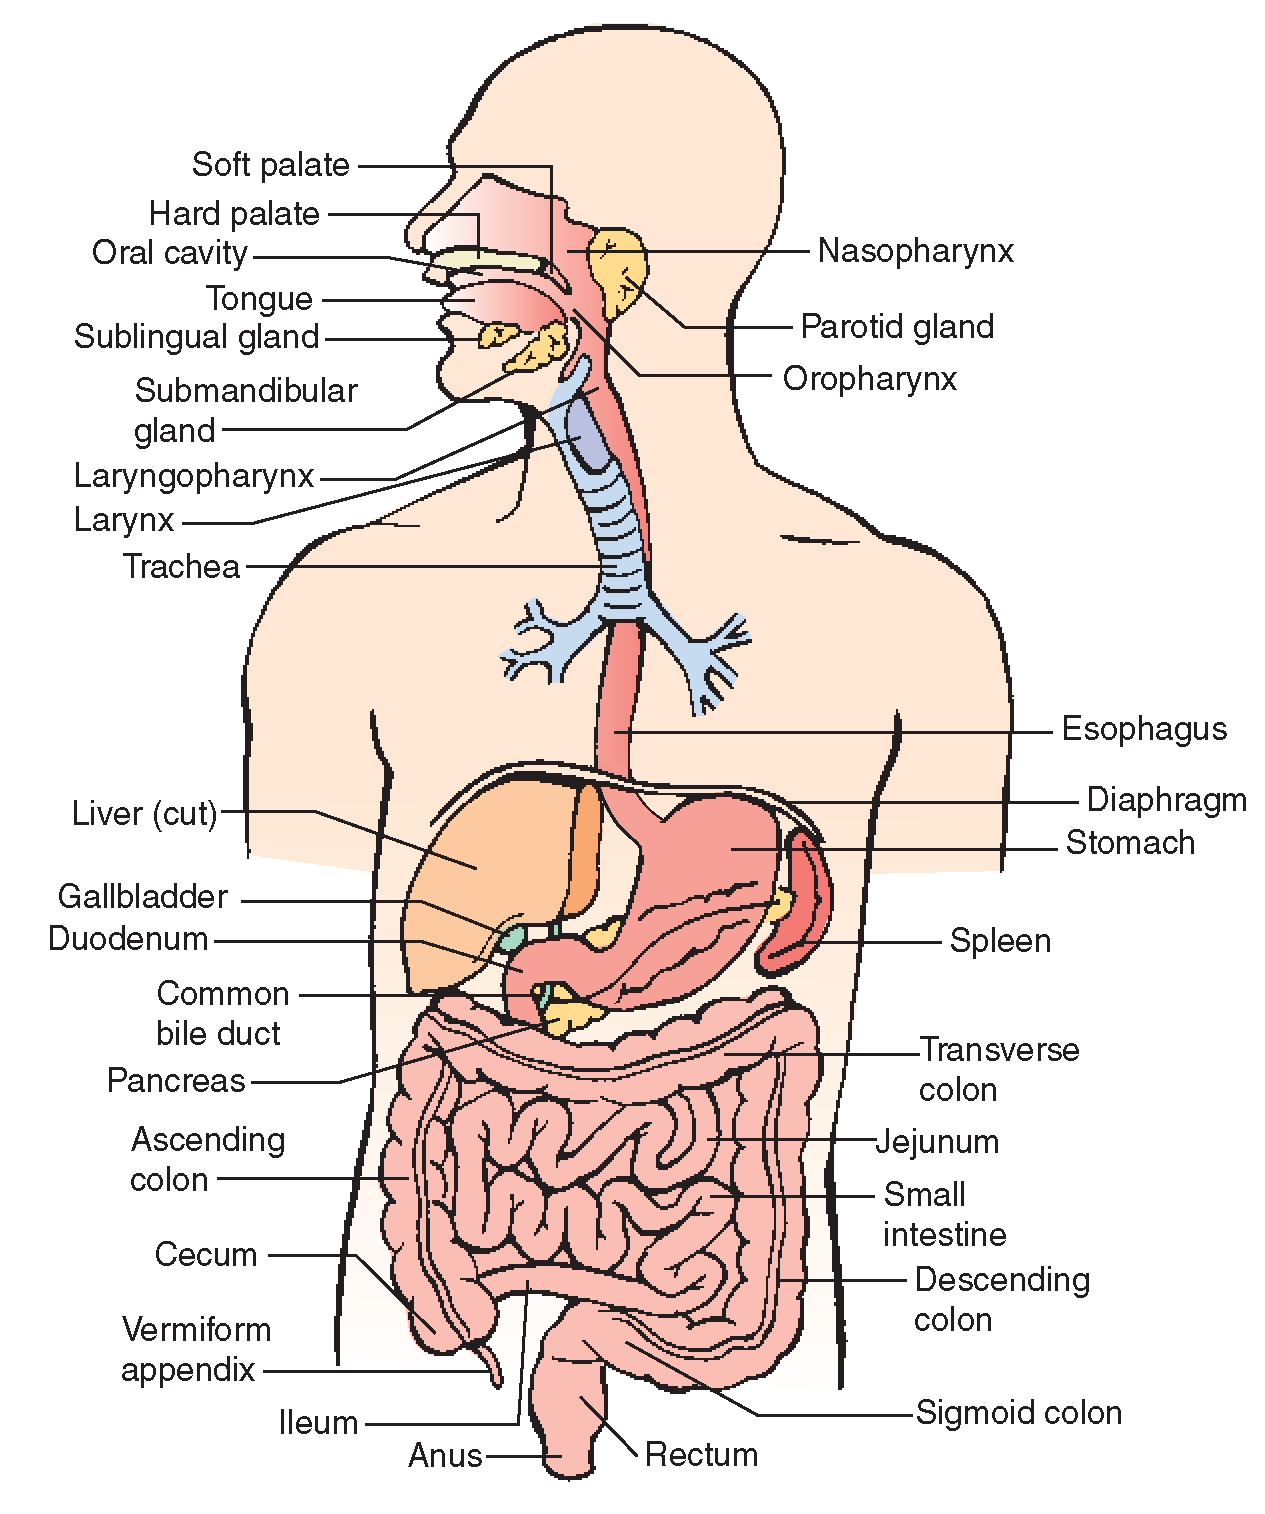 Diseases Of The Digestive System Human Body Diagram Human Digestive System Digestive System Anatomy